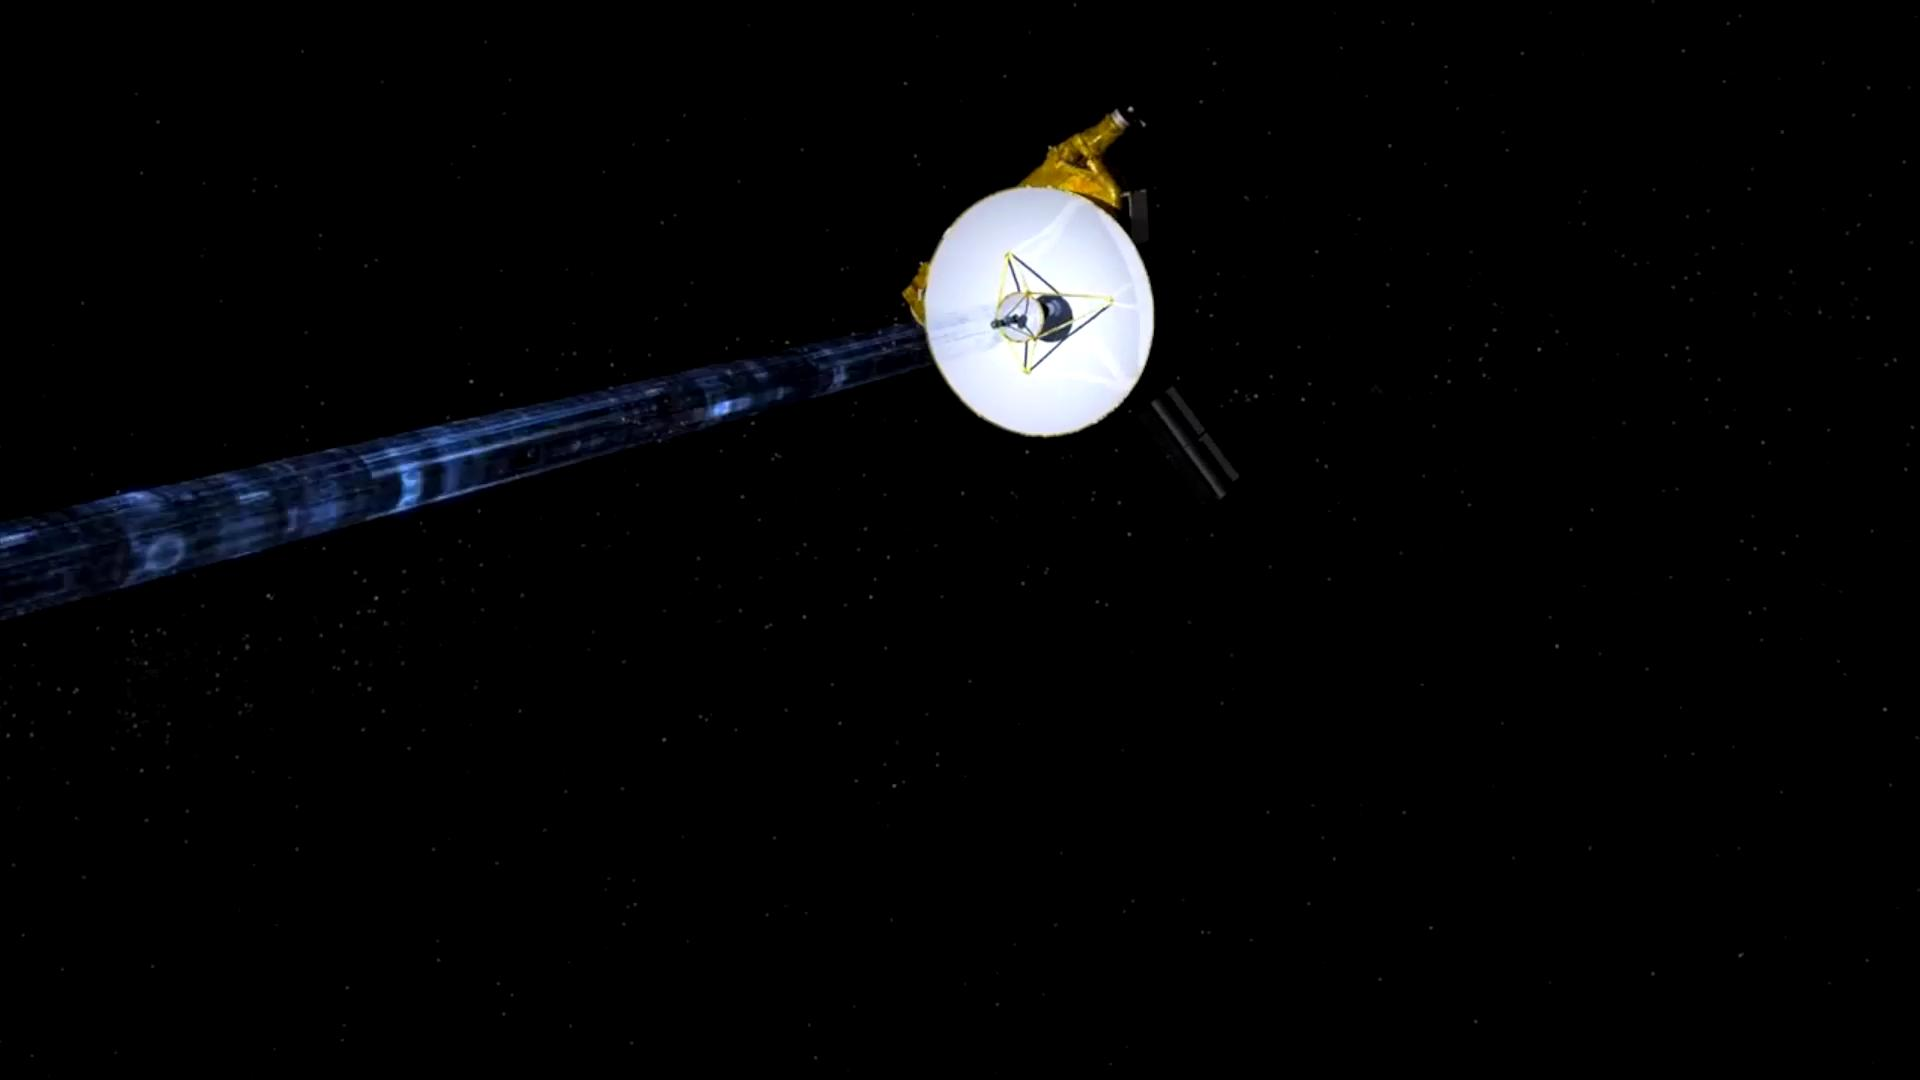 NASA may add messages from Earth to probe